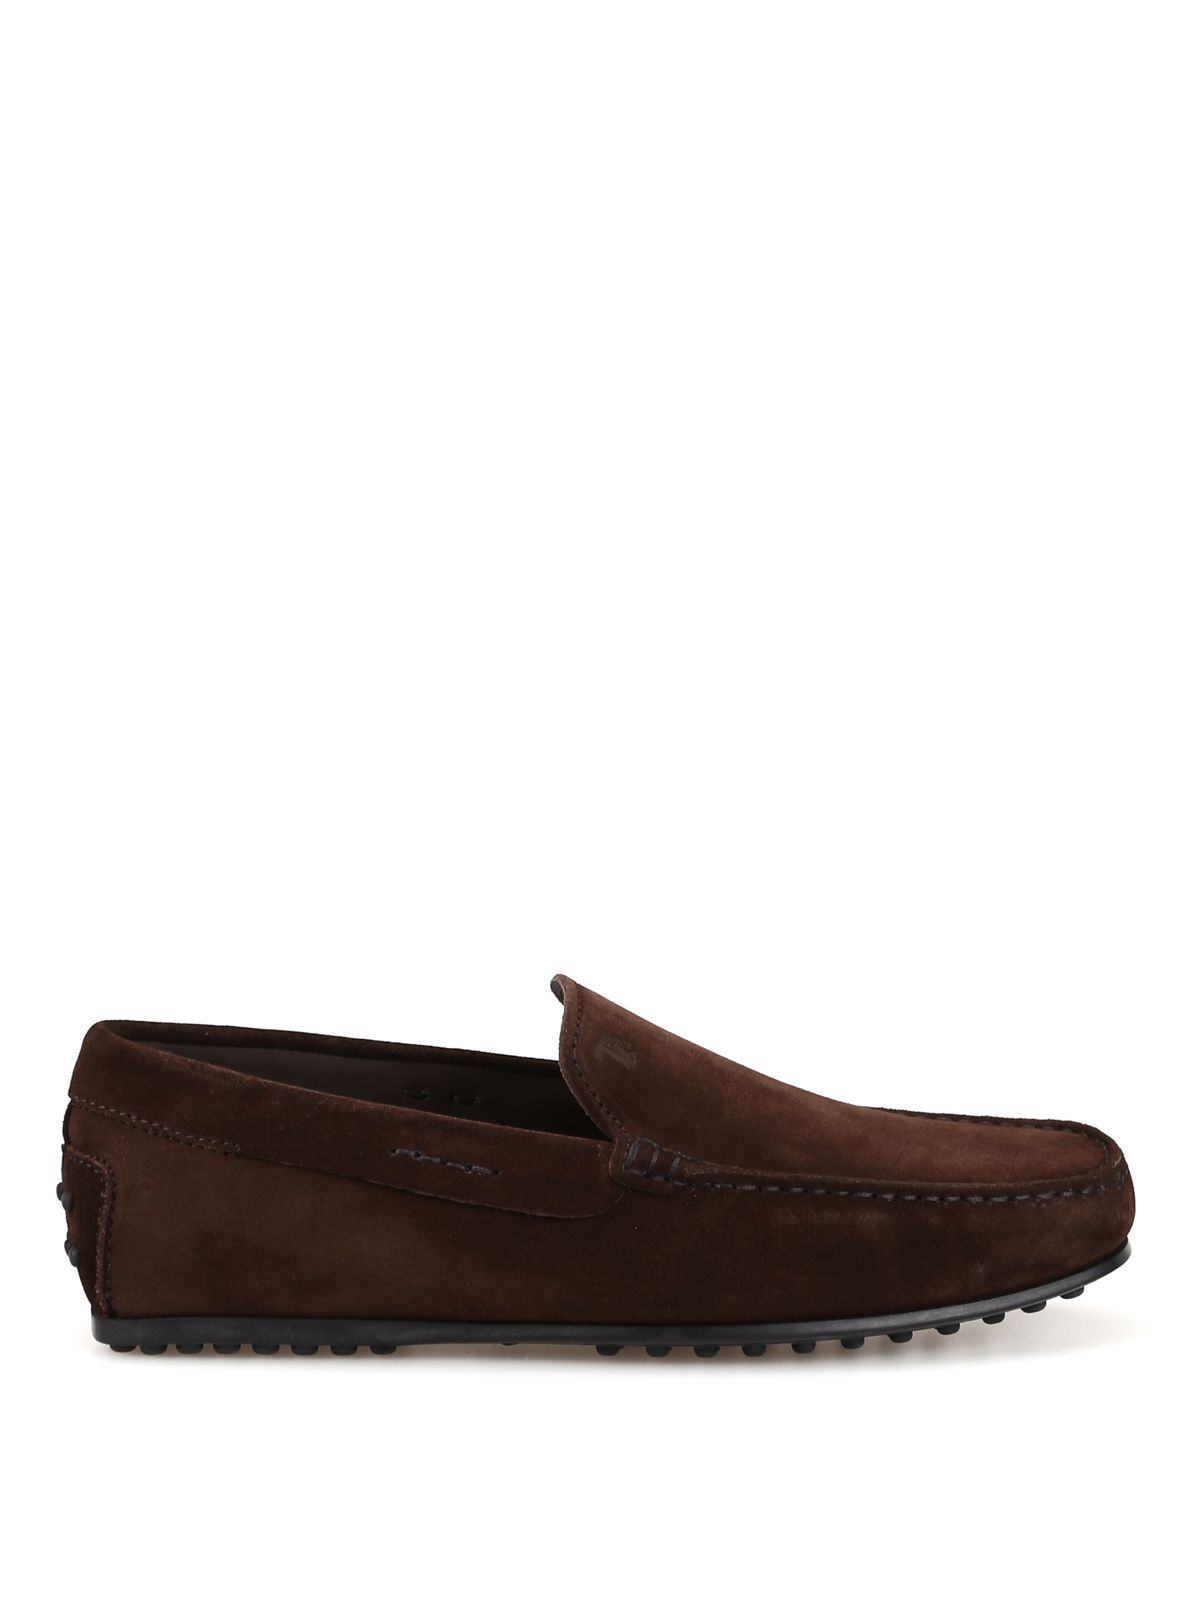 53494268aa6522 TOD'S CITY GOMMINO DARK BROWN SUEDE LOAFERS XXM0LR00040RE0S800. #tods #shoes  Hommes Africains,